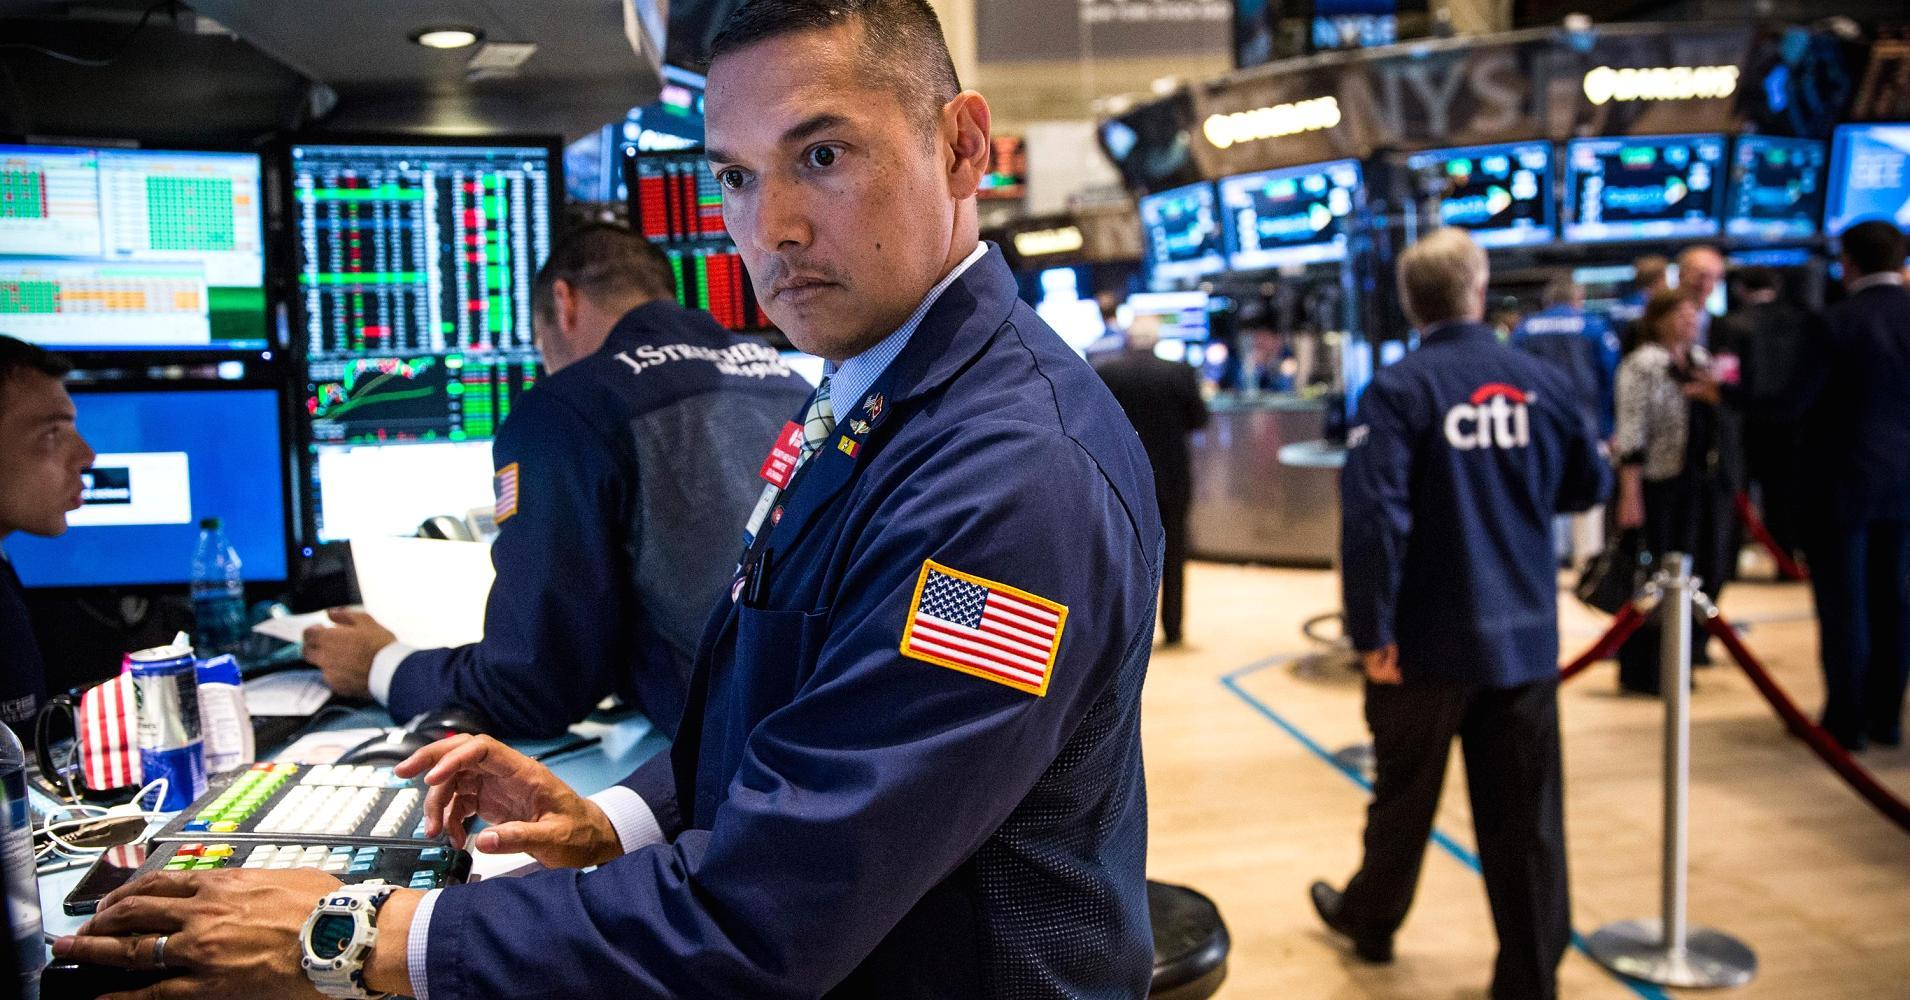 Early movers: MCD, GE, LL, GME, TGT & more